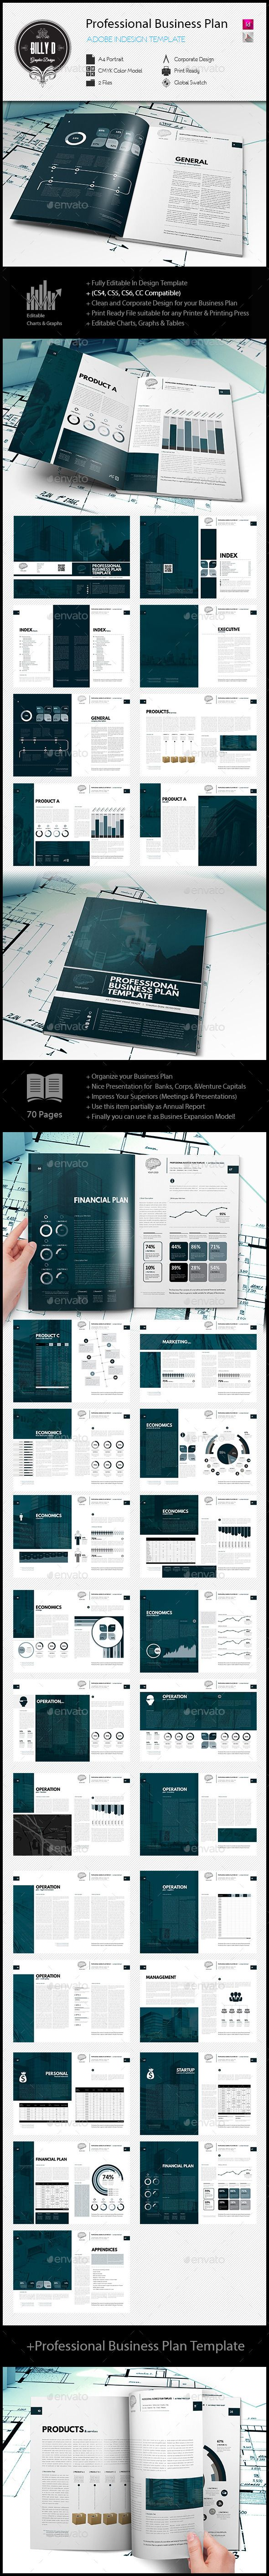 professional business plan template miscellaneous print templates